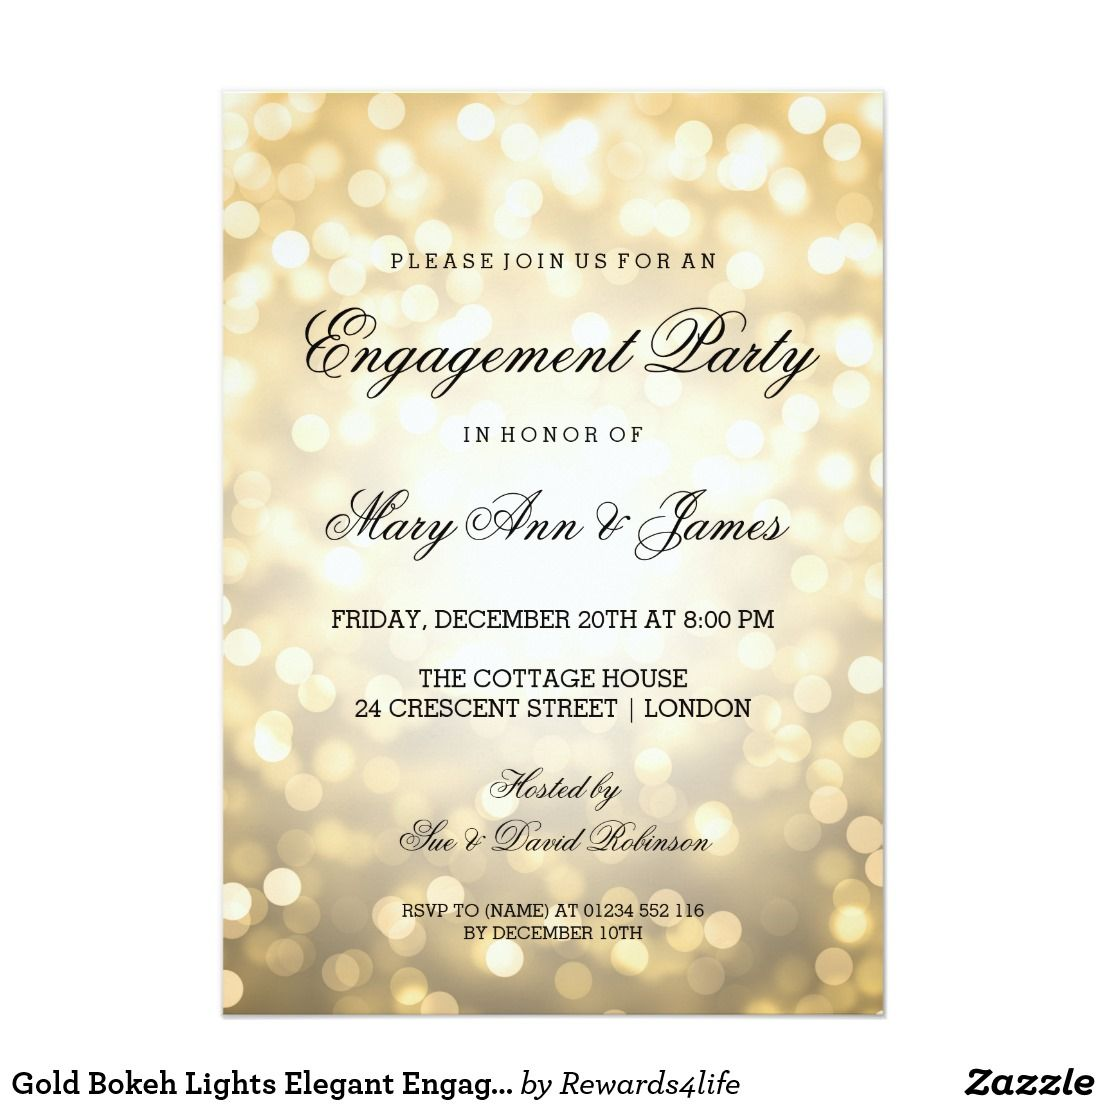 Gold Bokeh Lights Elegant Engagement Party Card | Engagement and ...